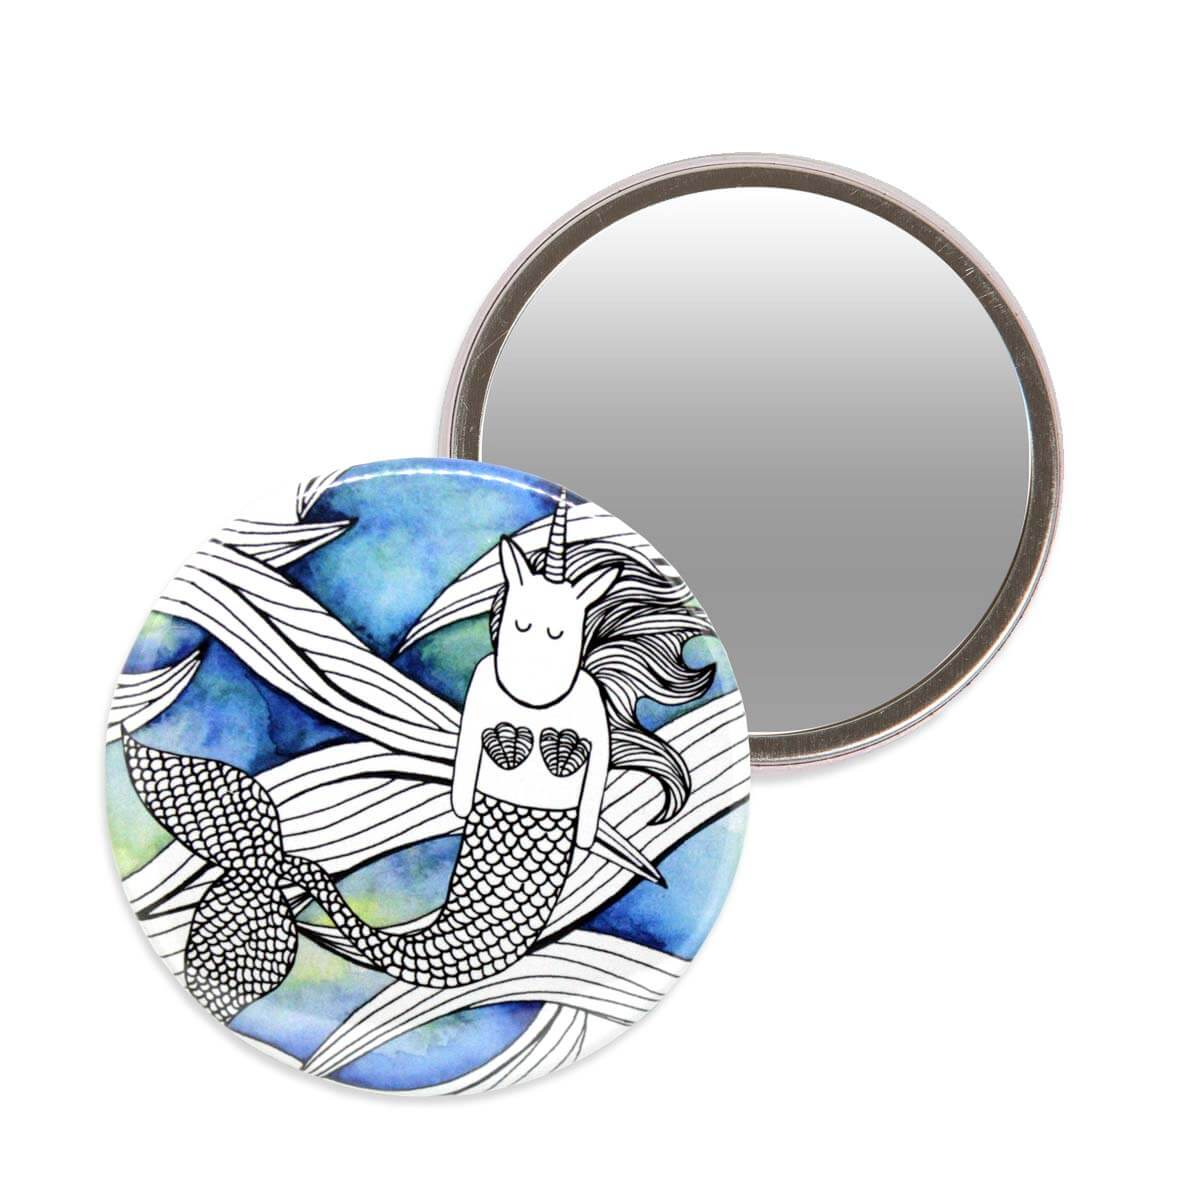 Makeup mirror with an illustration of a unicorn mermaid